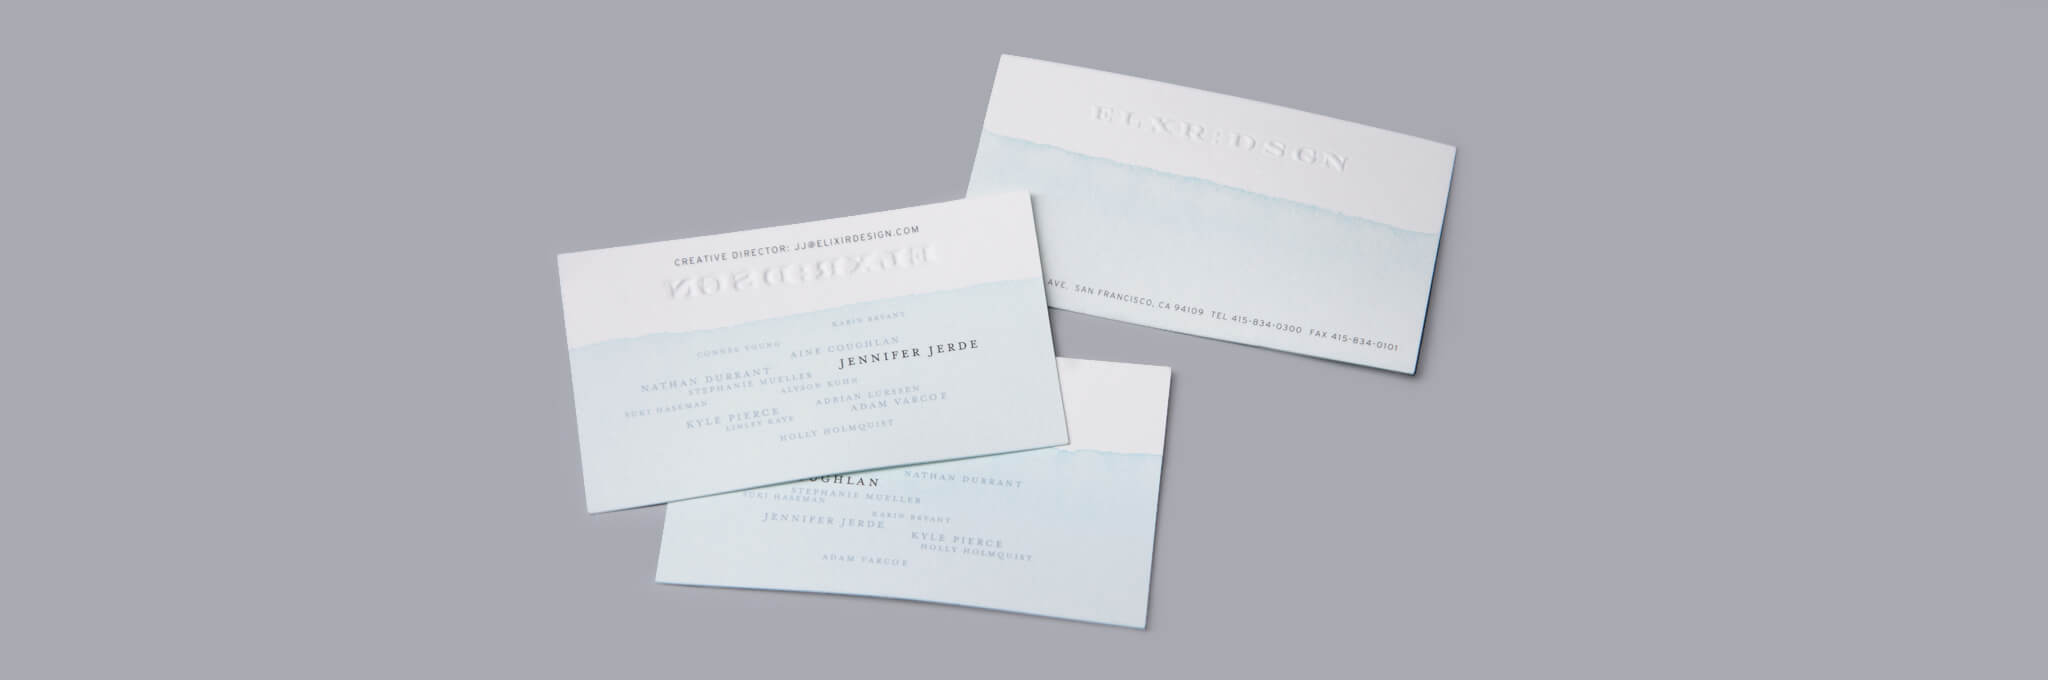 3 white business cards partially dipped in light blue ink on gray background